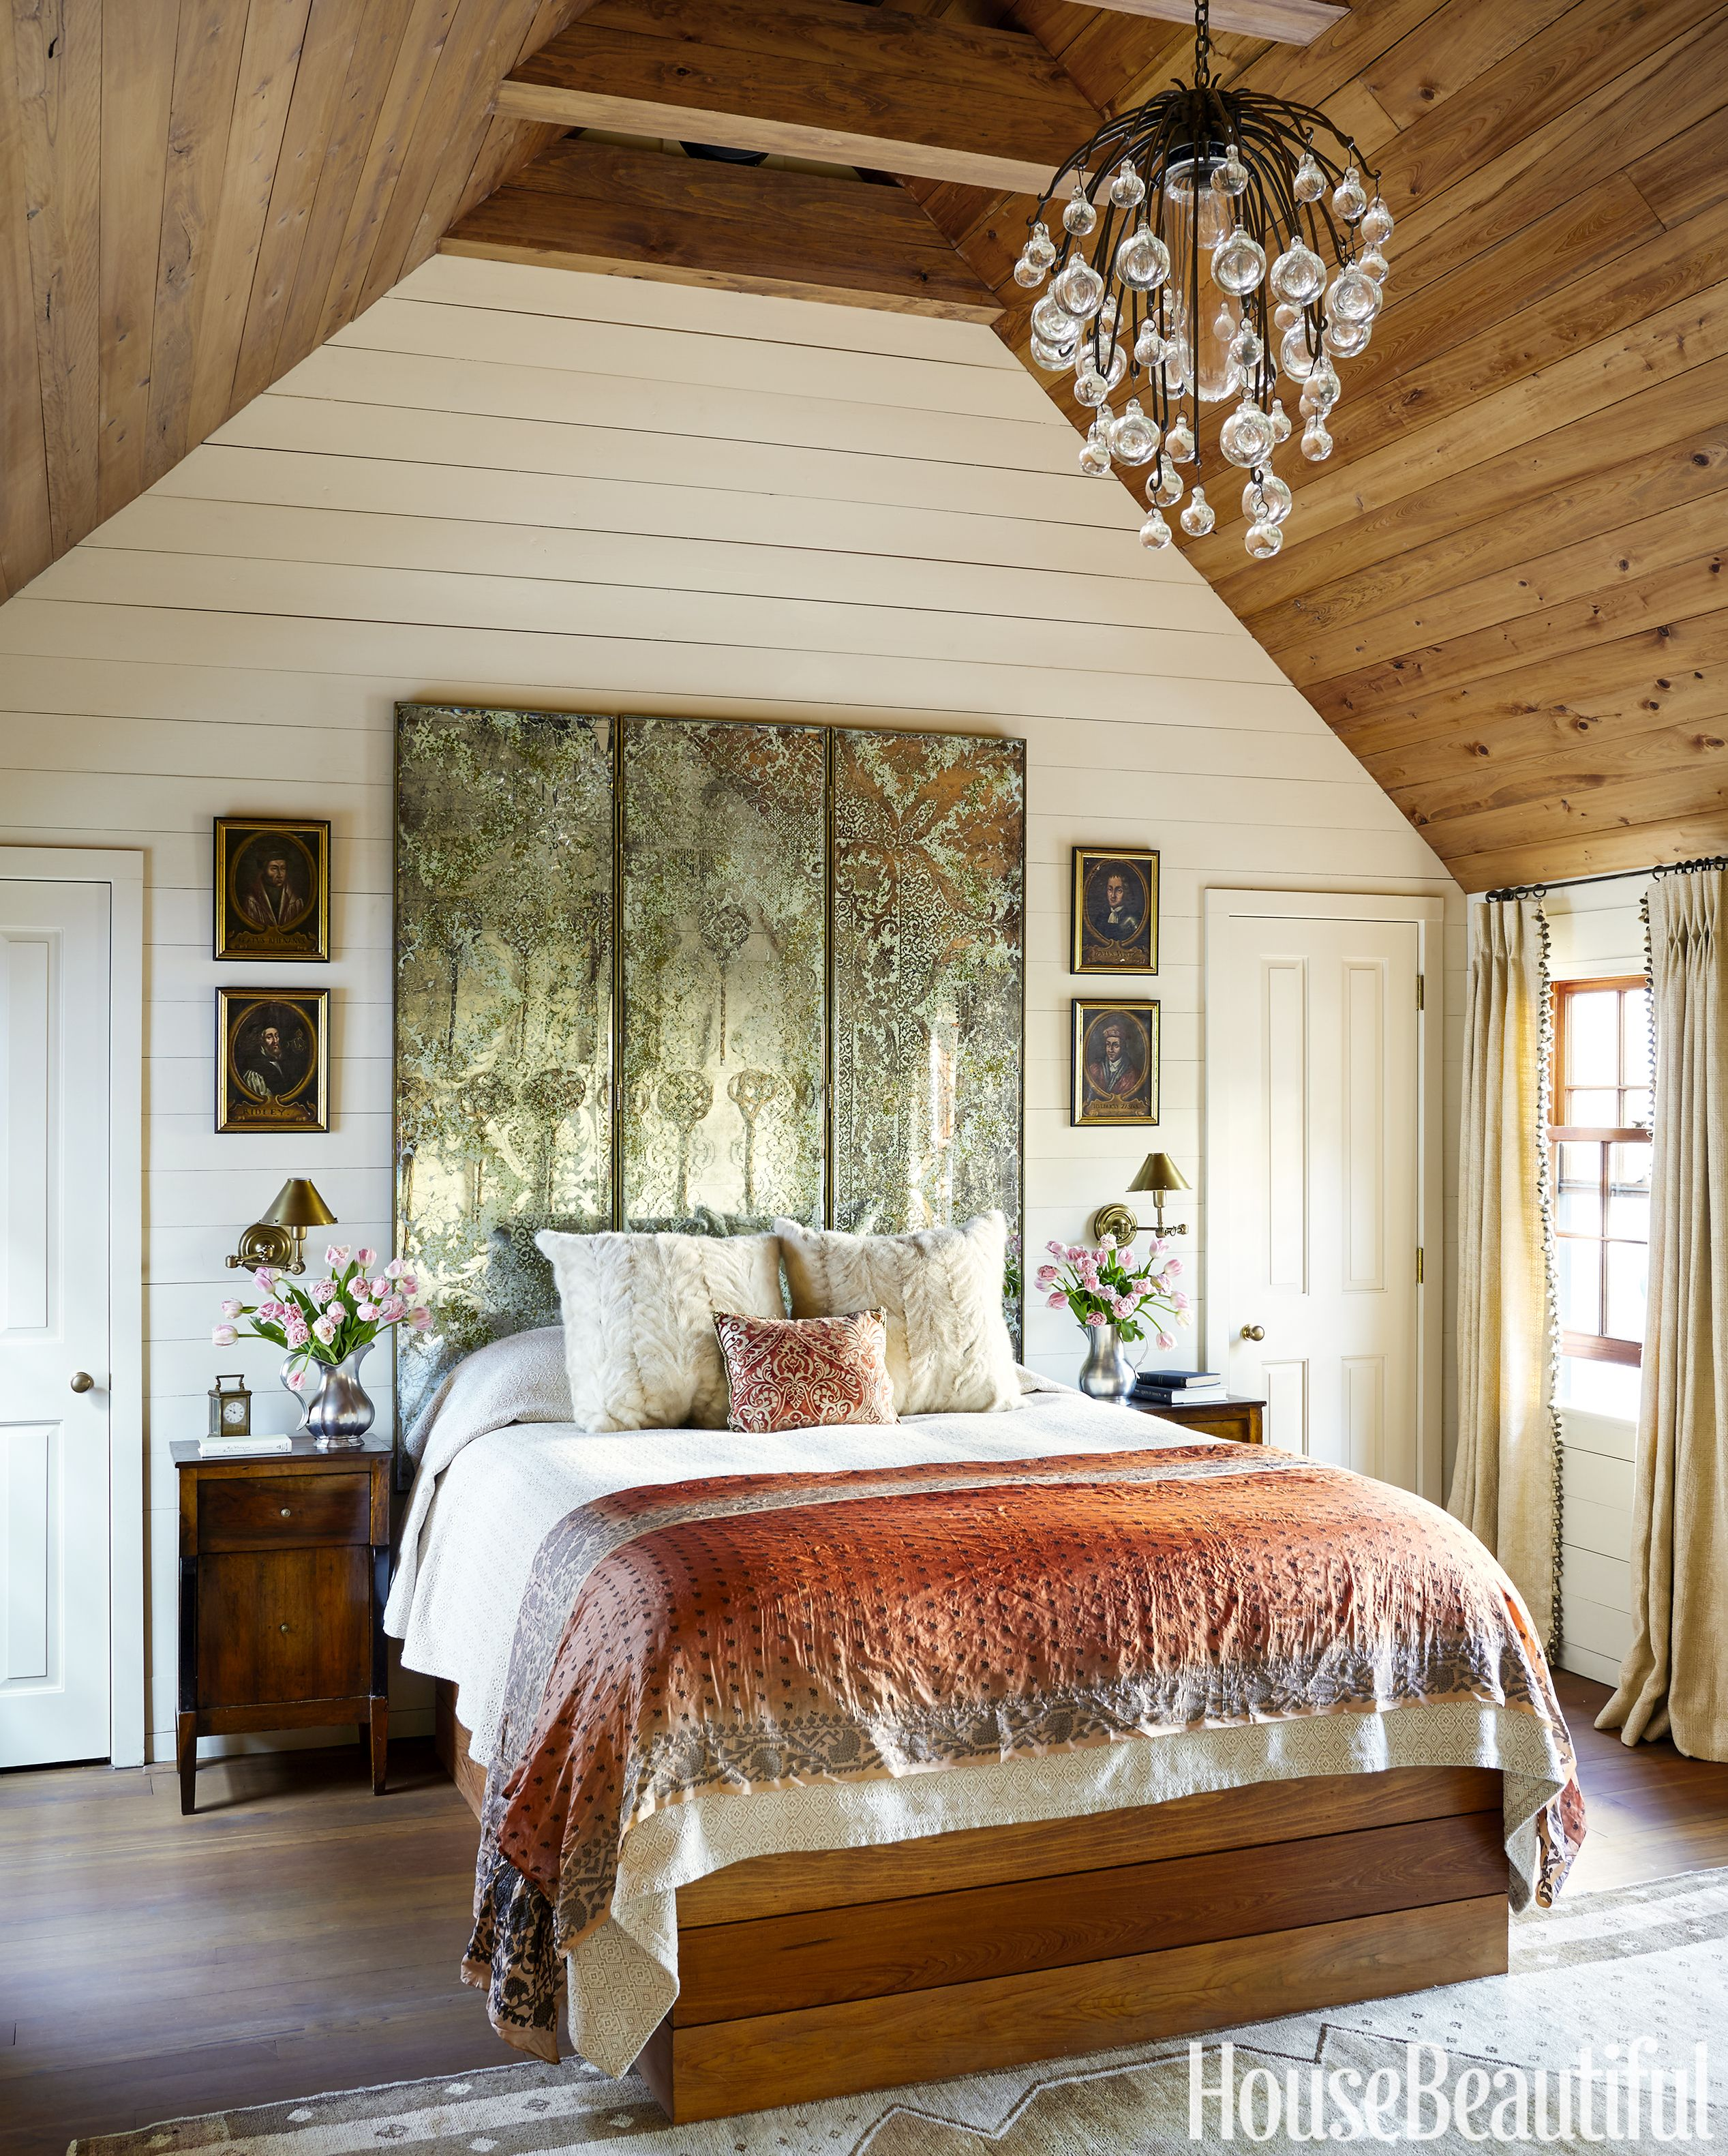 25 Stunning Transitional Bedroom Design Ideas: Unique Bedroom Décor Ideas You Haven't Seen Before